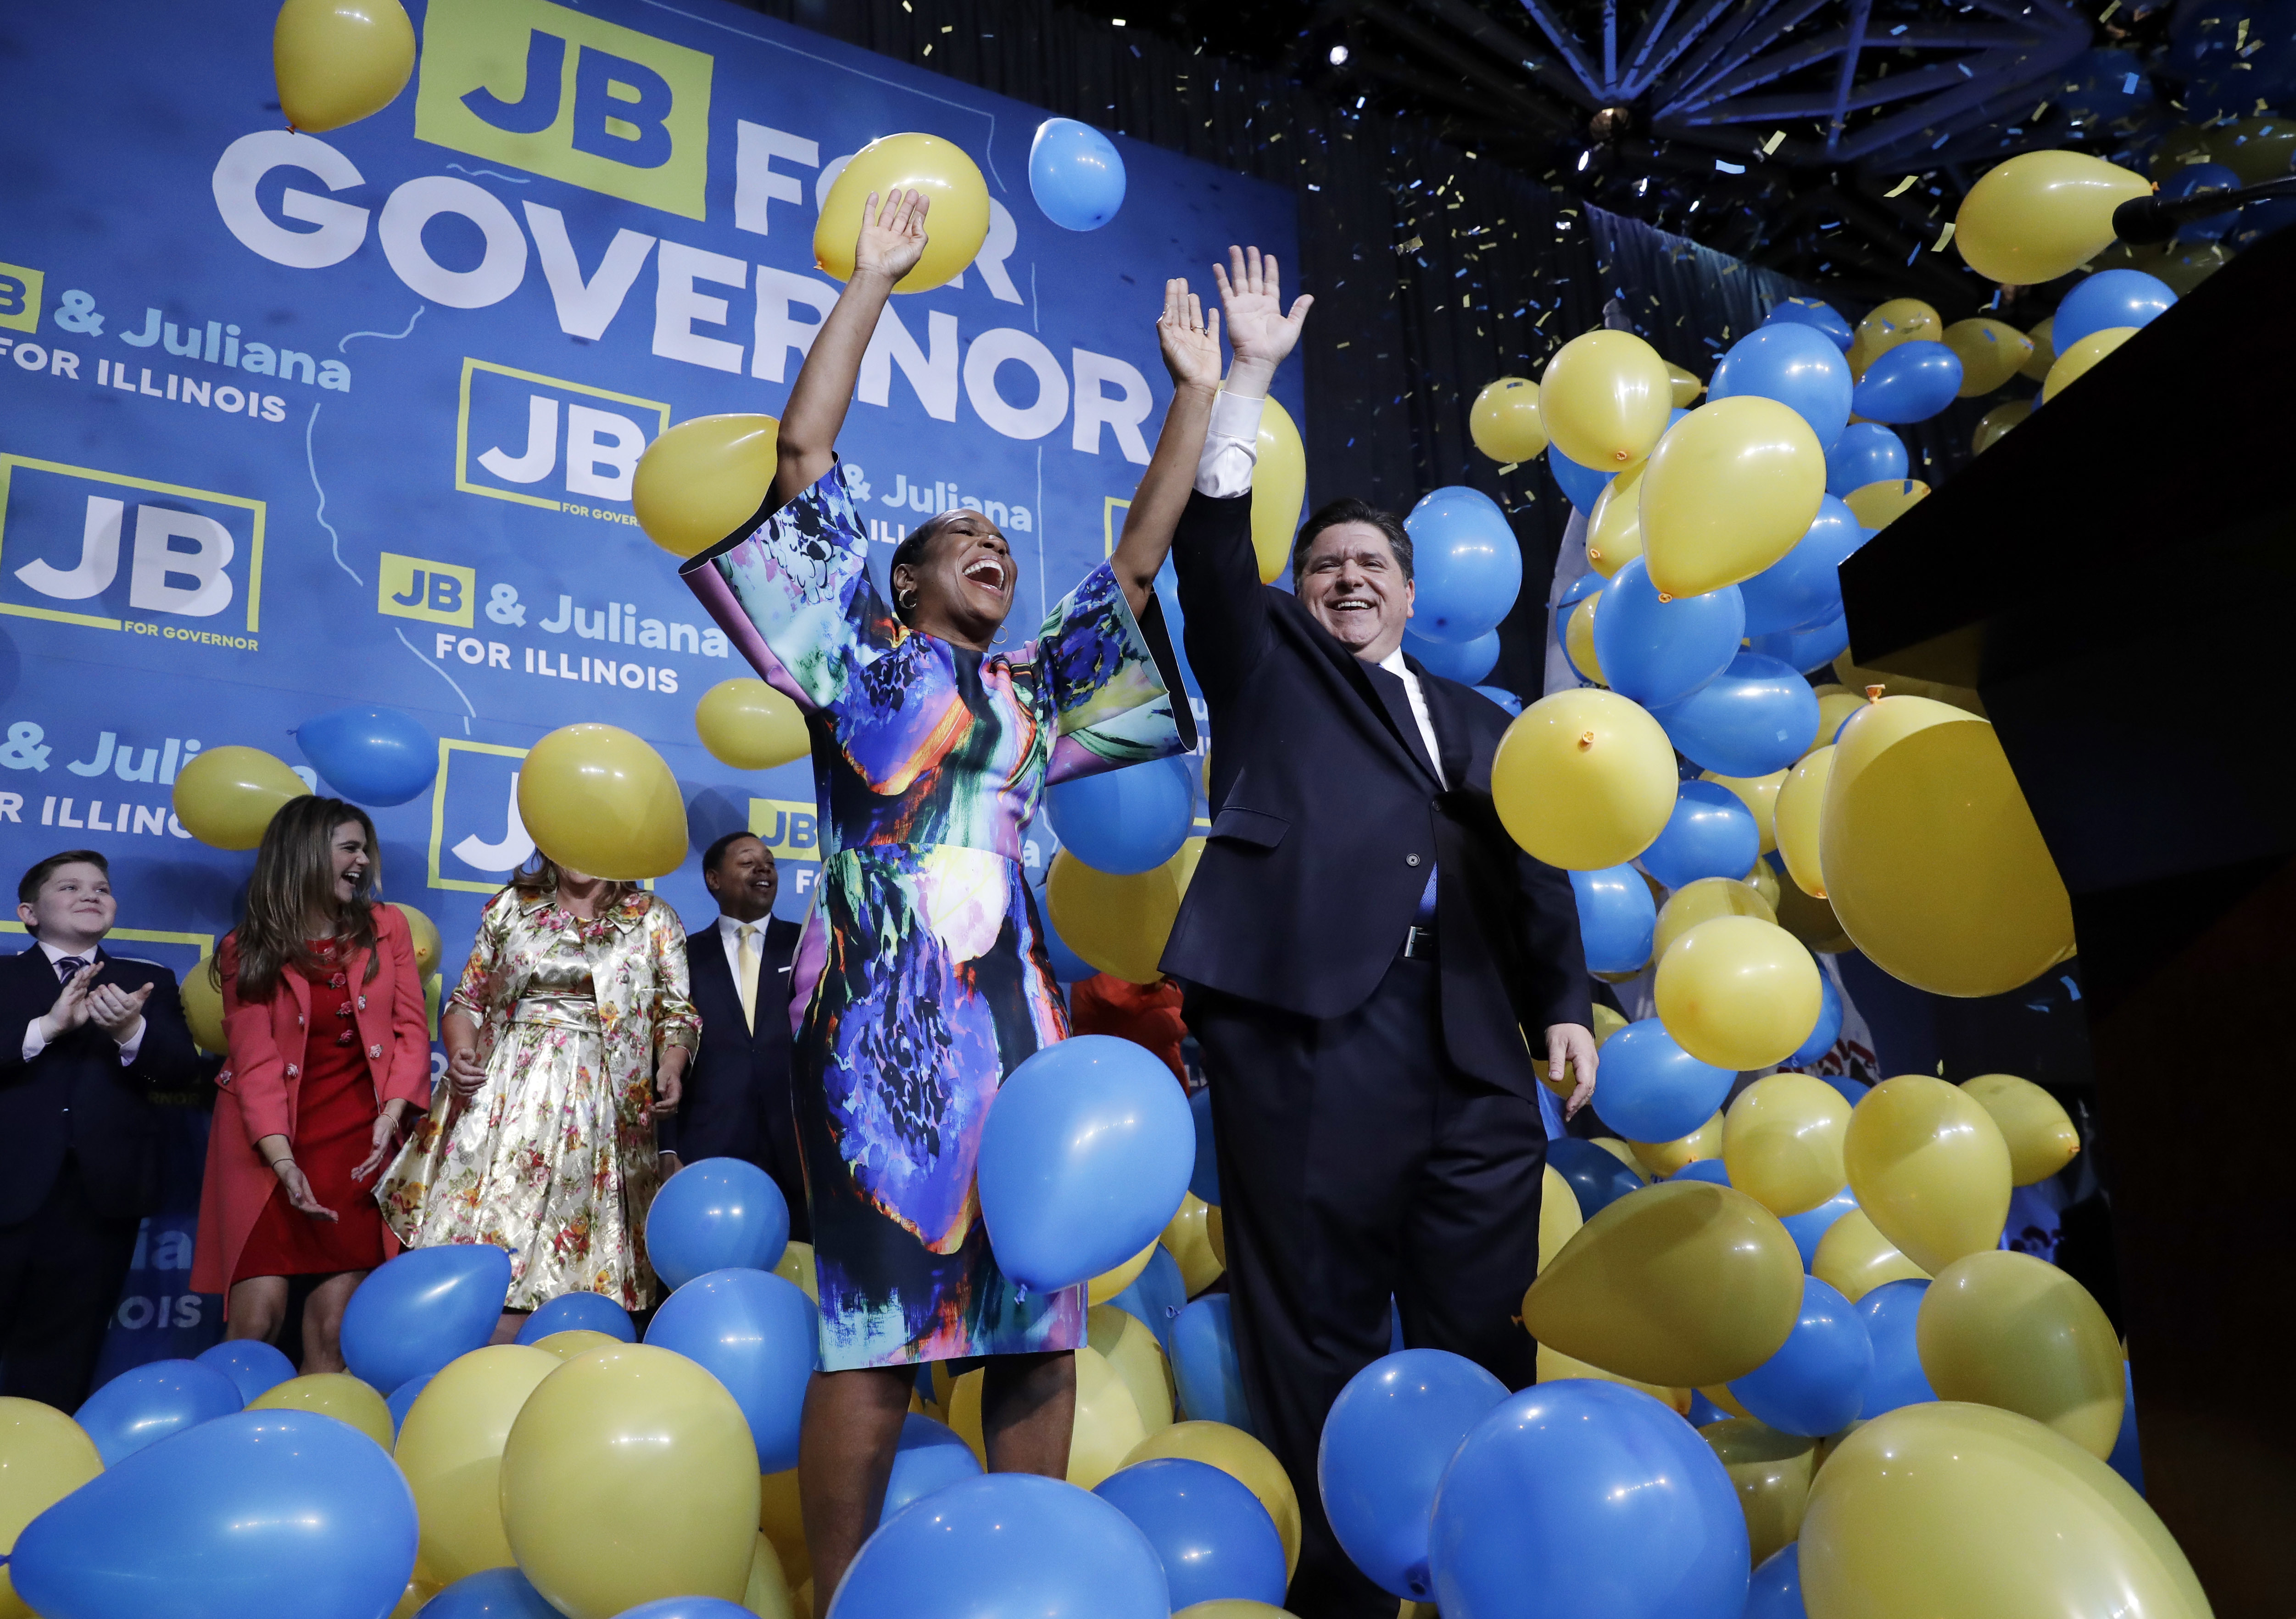 Democratic gubernatorial candidate J.B. Pritzker, right, and his running mate Lt. Governor candidate Juliana Stratton celebrate as they wave to supporters after Pritzker is elected as Illinois governor over Republican incumbent Bruce Rauner in Chicago, Tuesday, Nov. 6, 2018. (AP Photo/Nam Y. Huh)